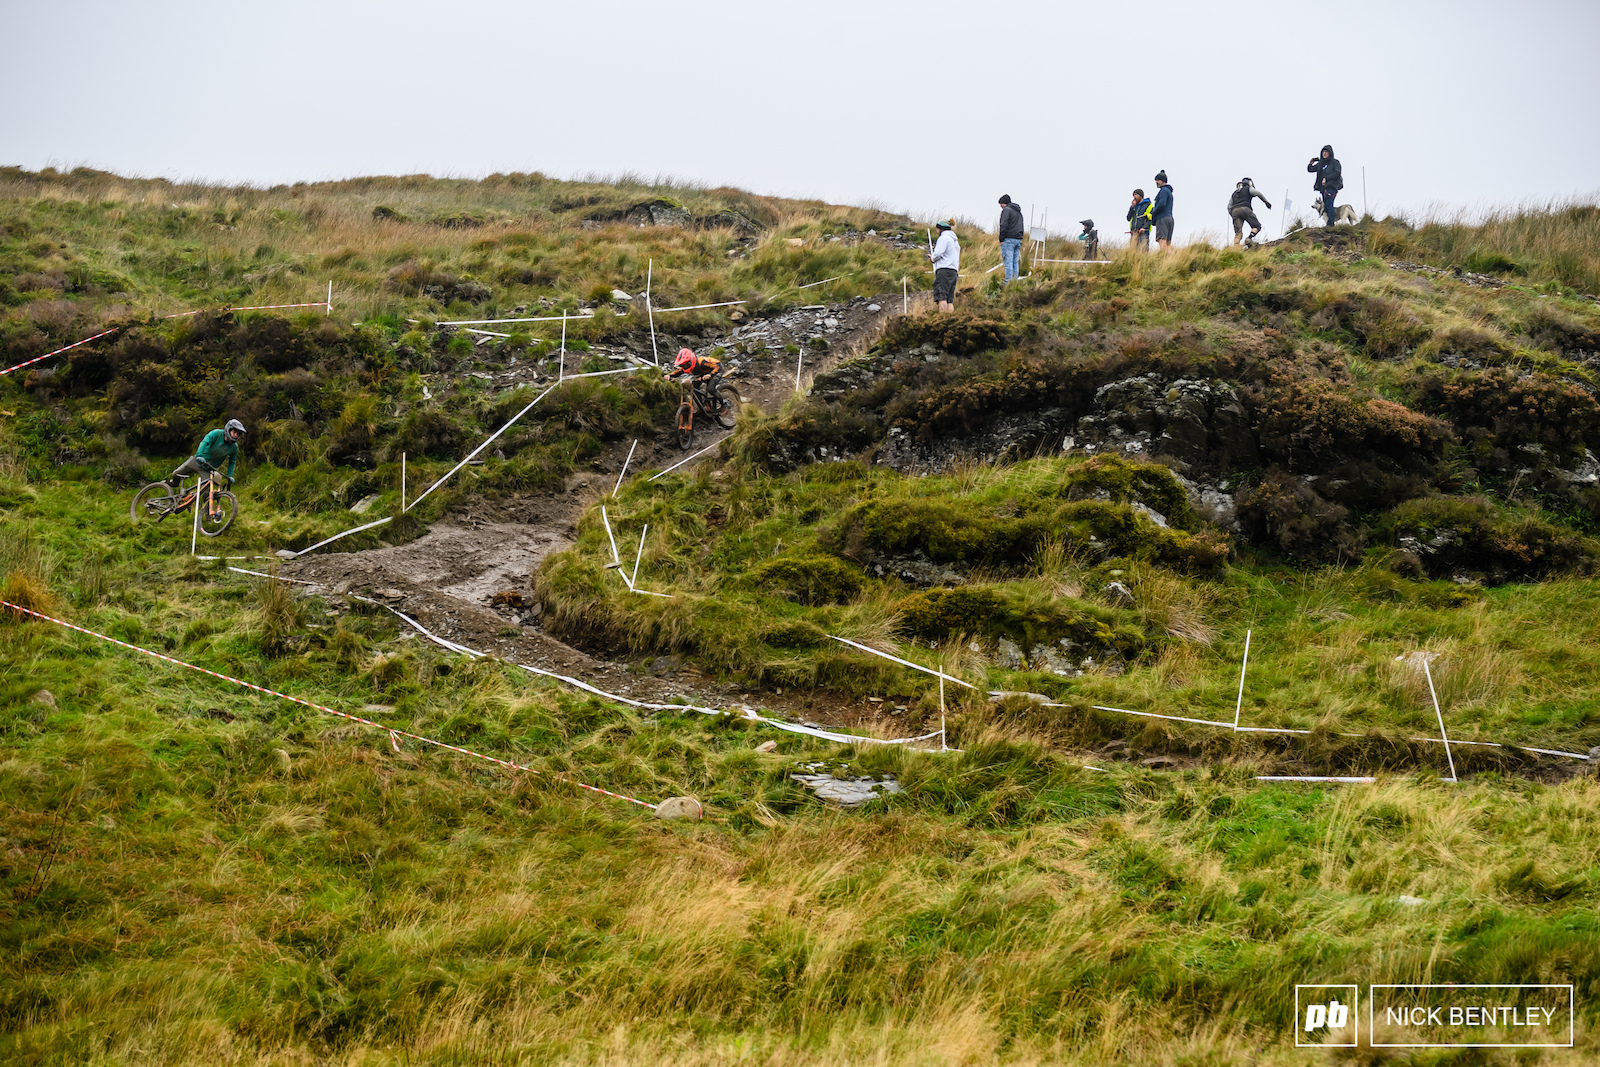 There were plenty of riders ending up in the B zone below this chute